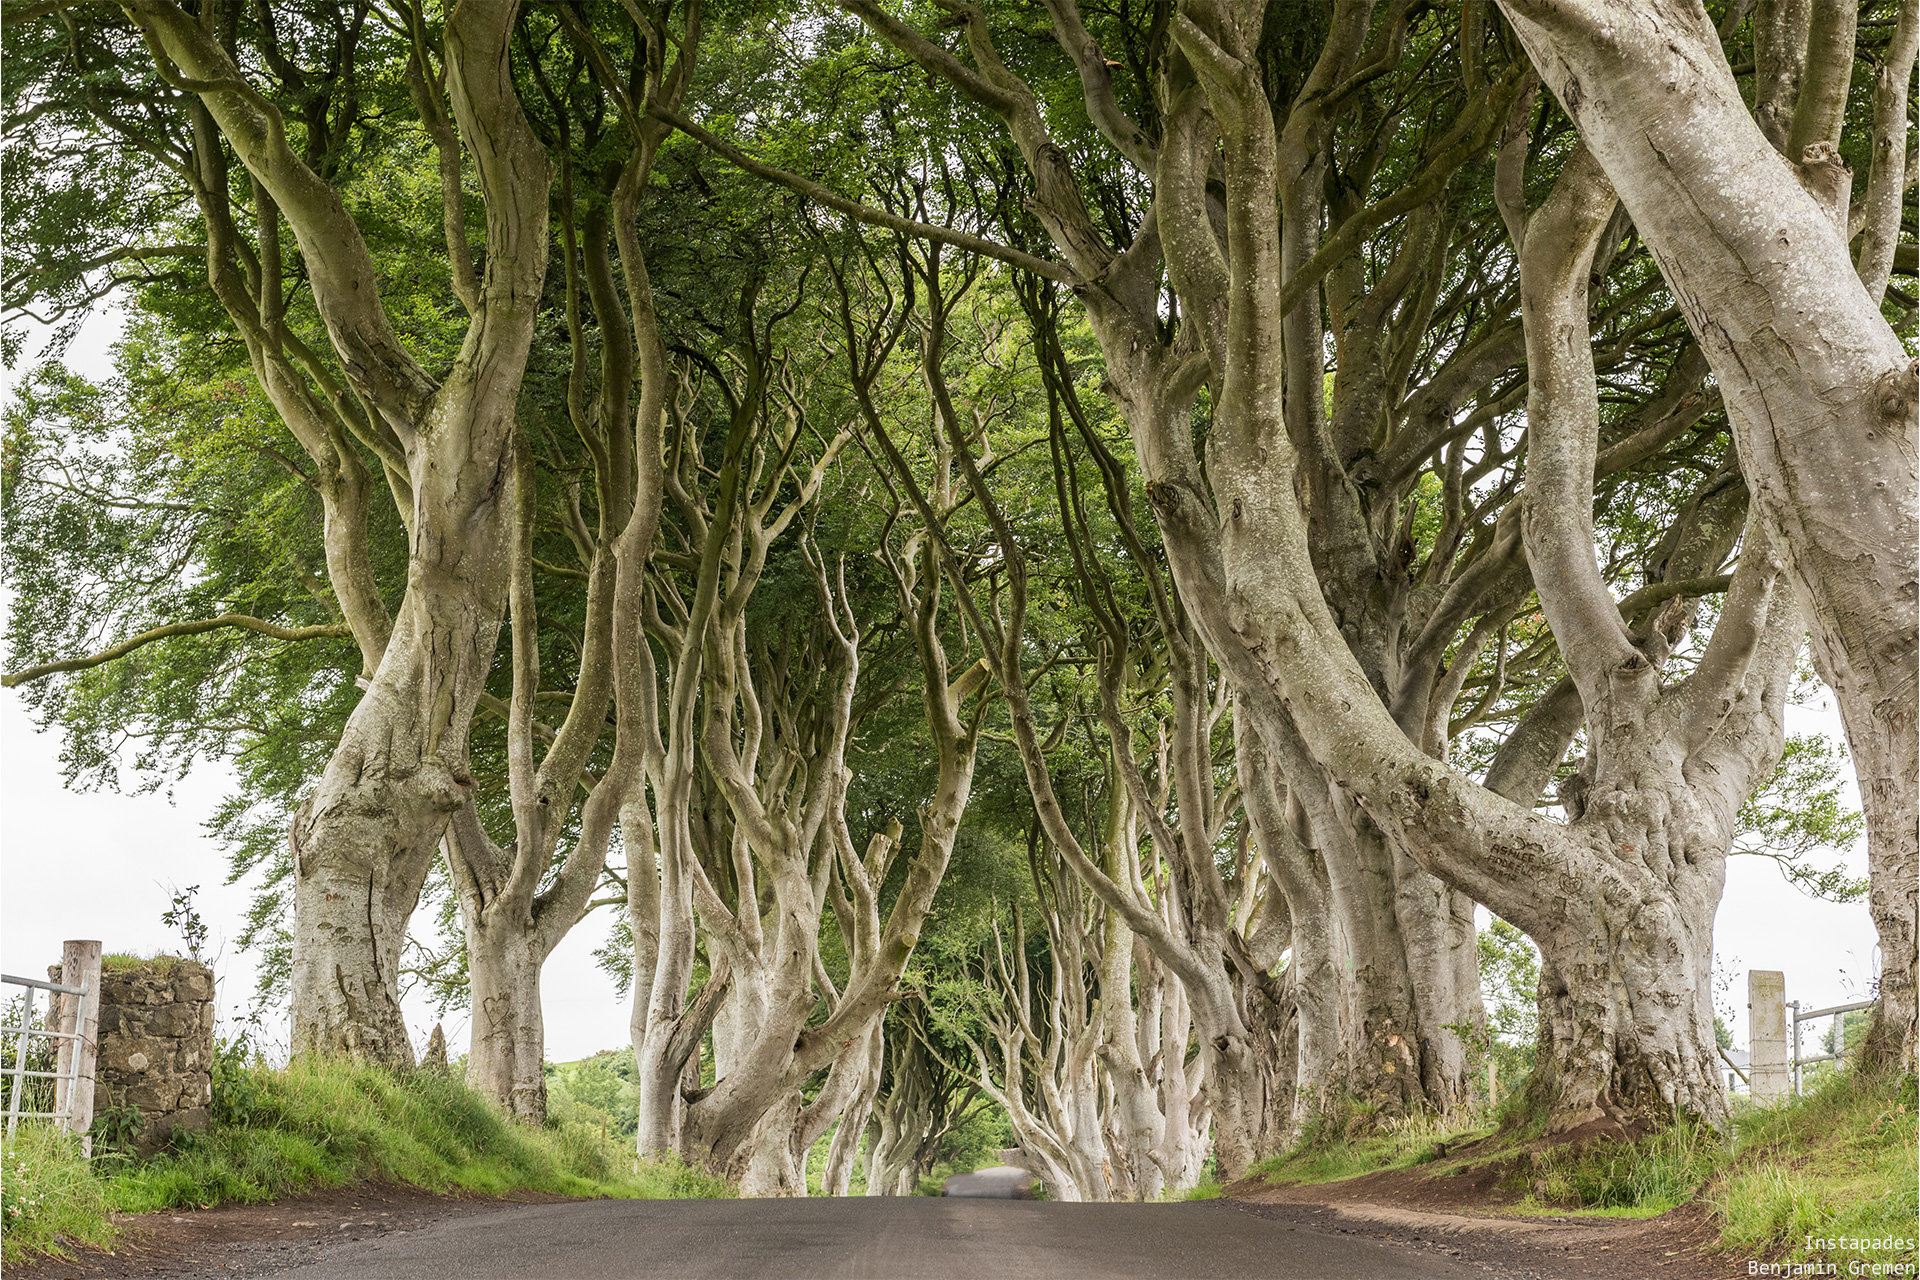 j4-dark-hedges-7283